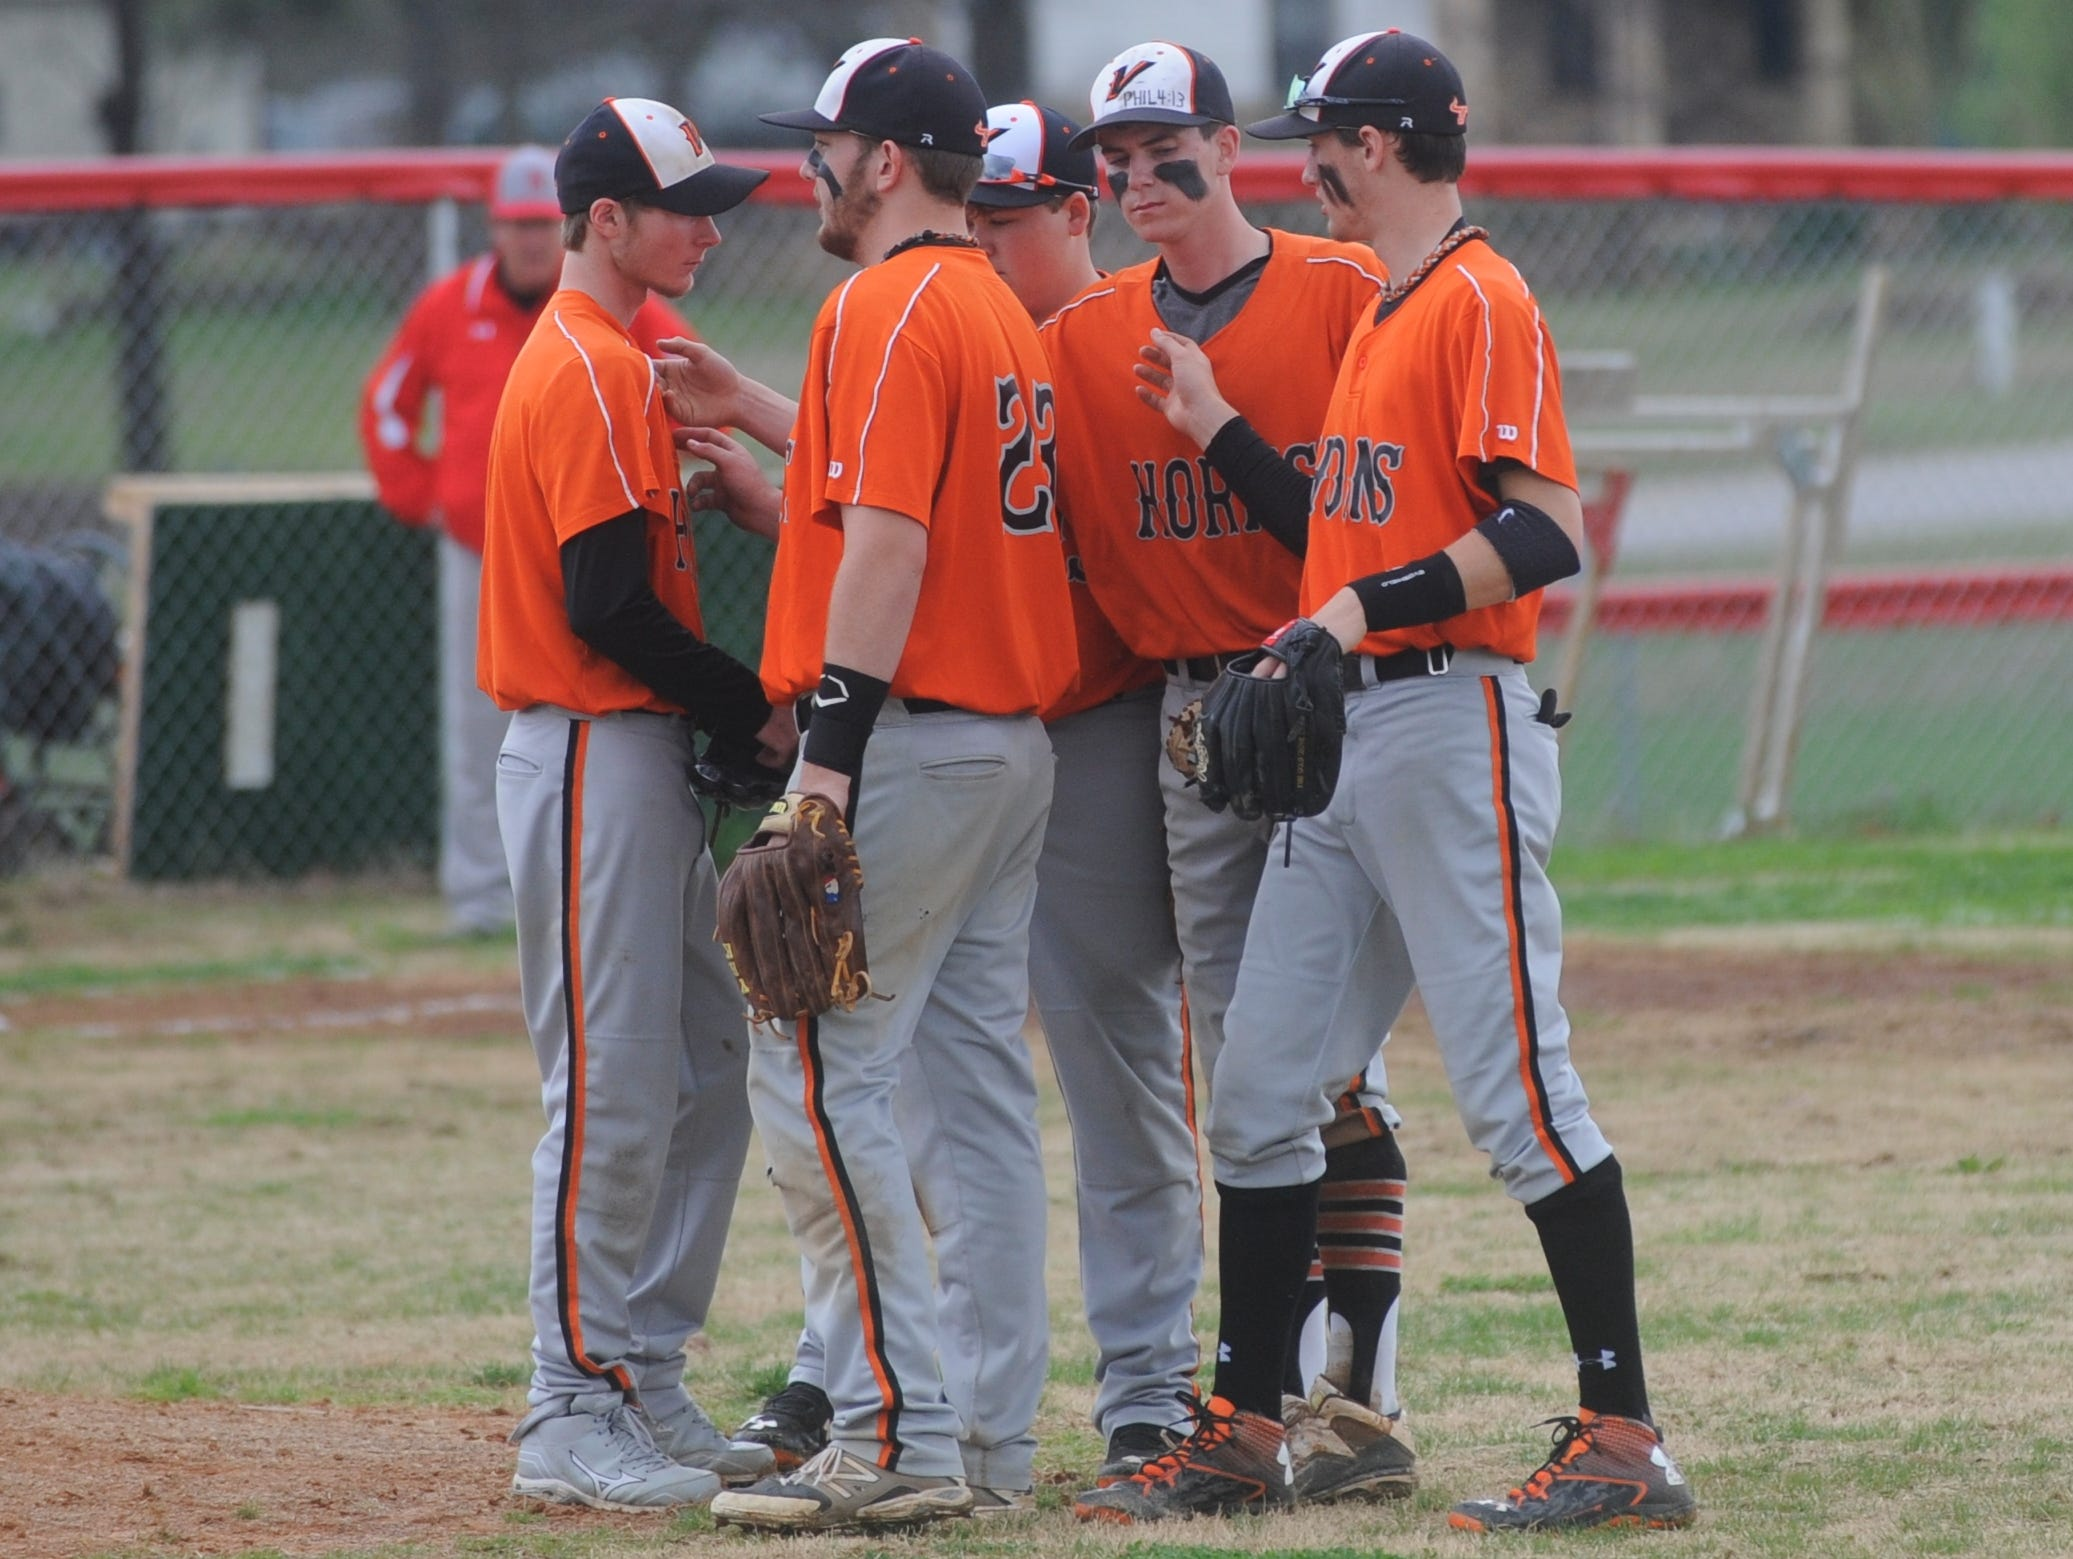 Several of the Viola Longhorns meet before an inning against Norfork earlier this season.